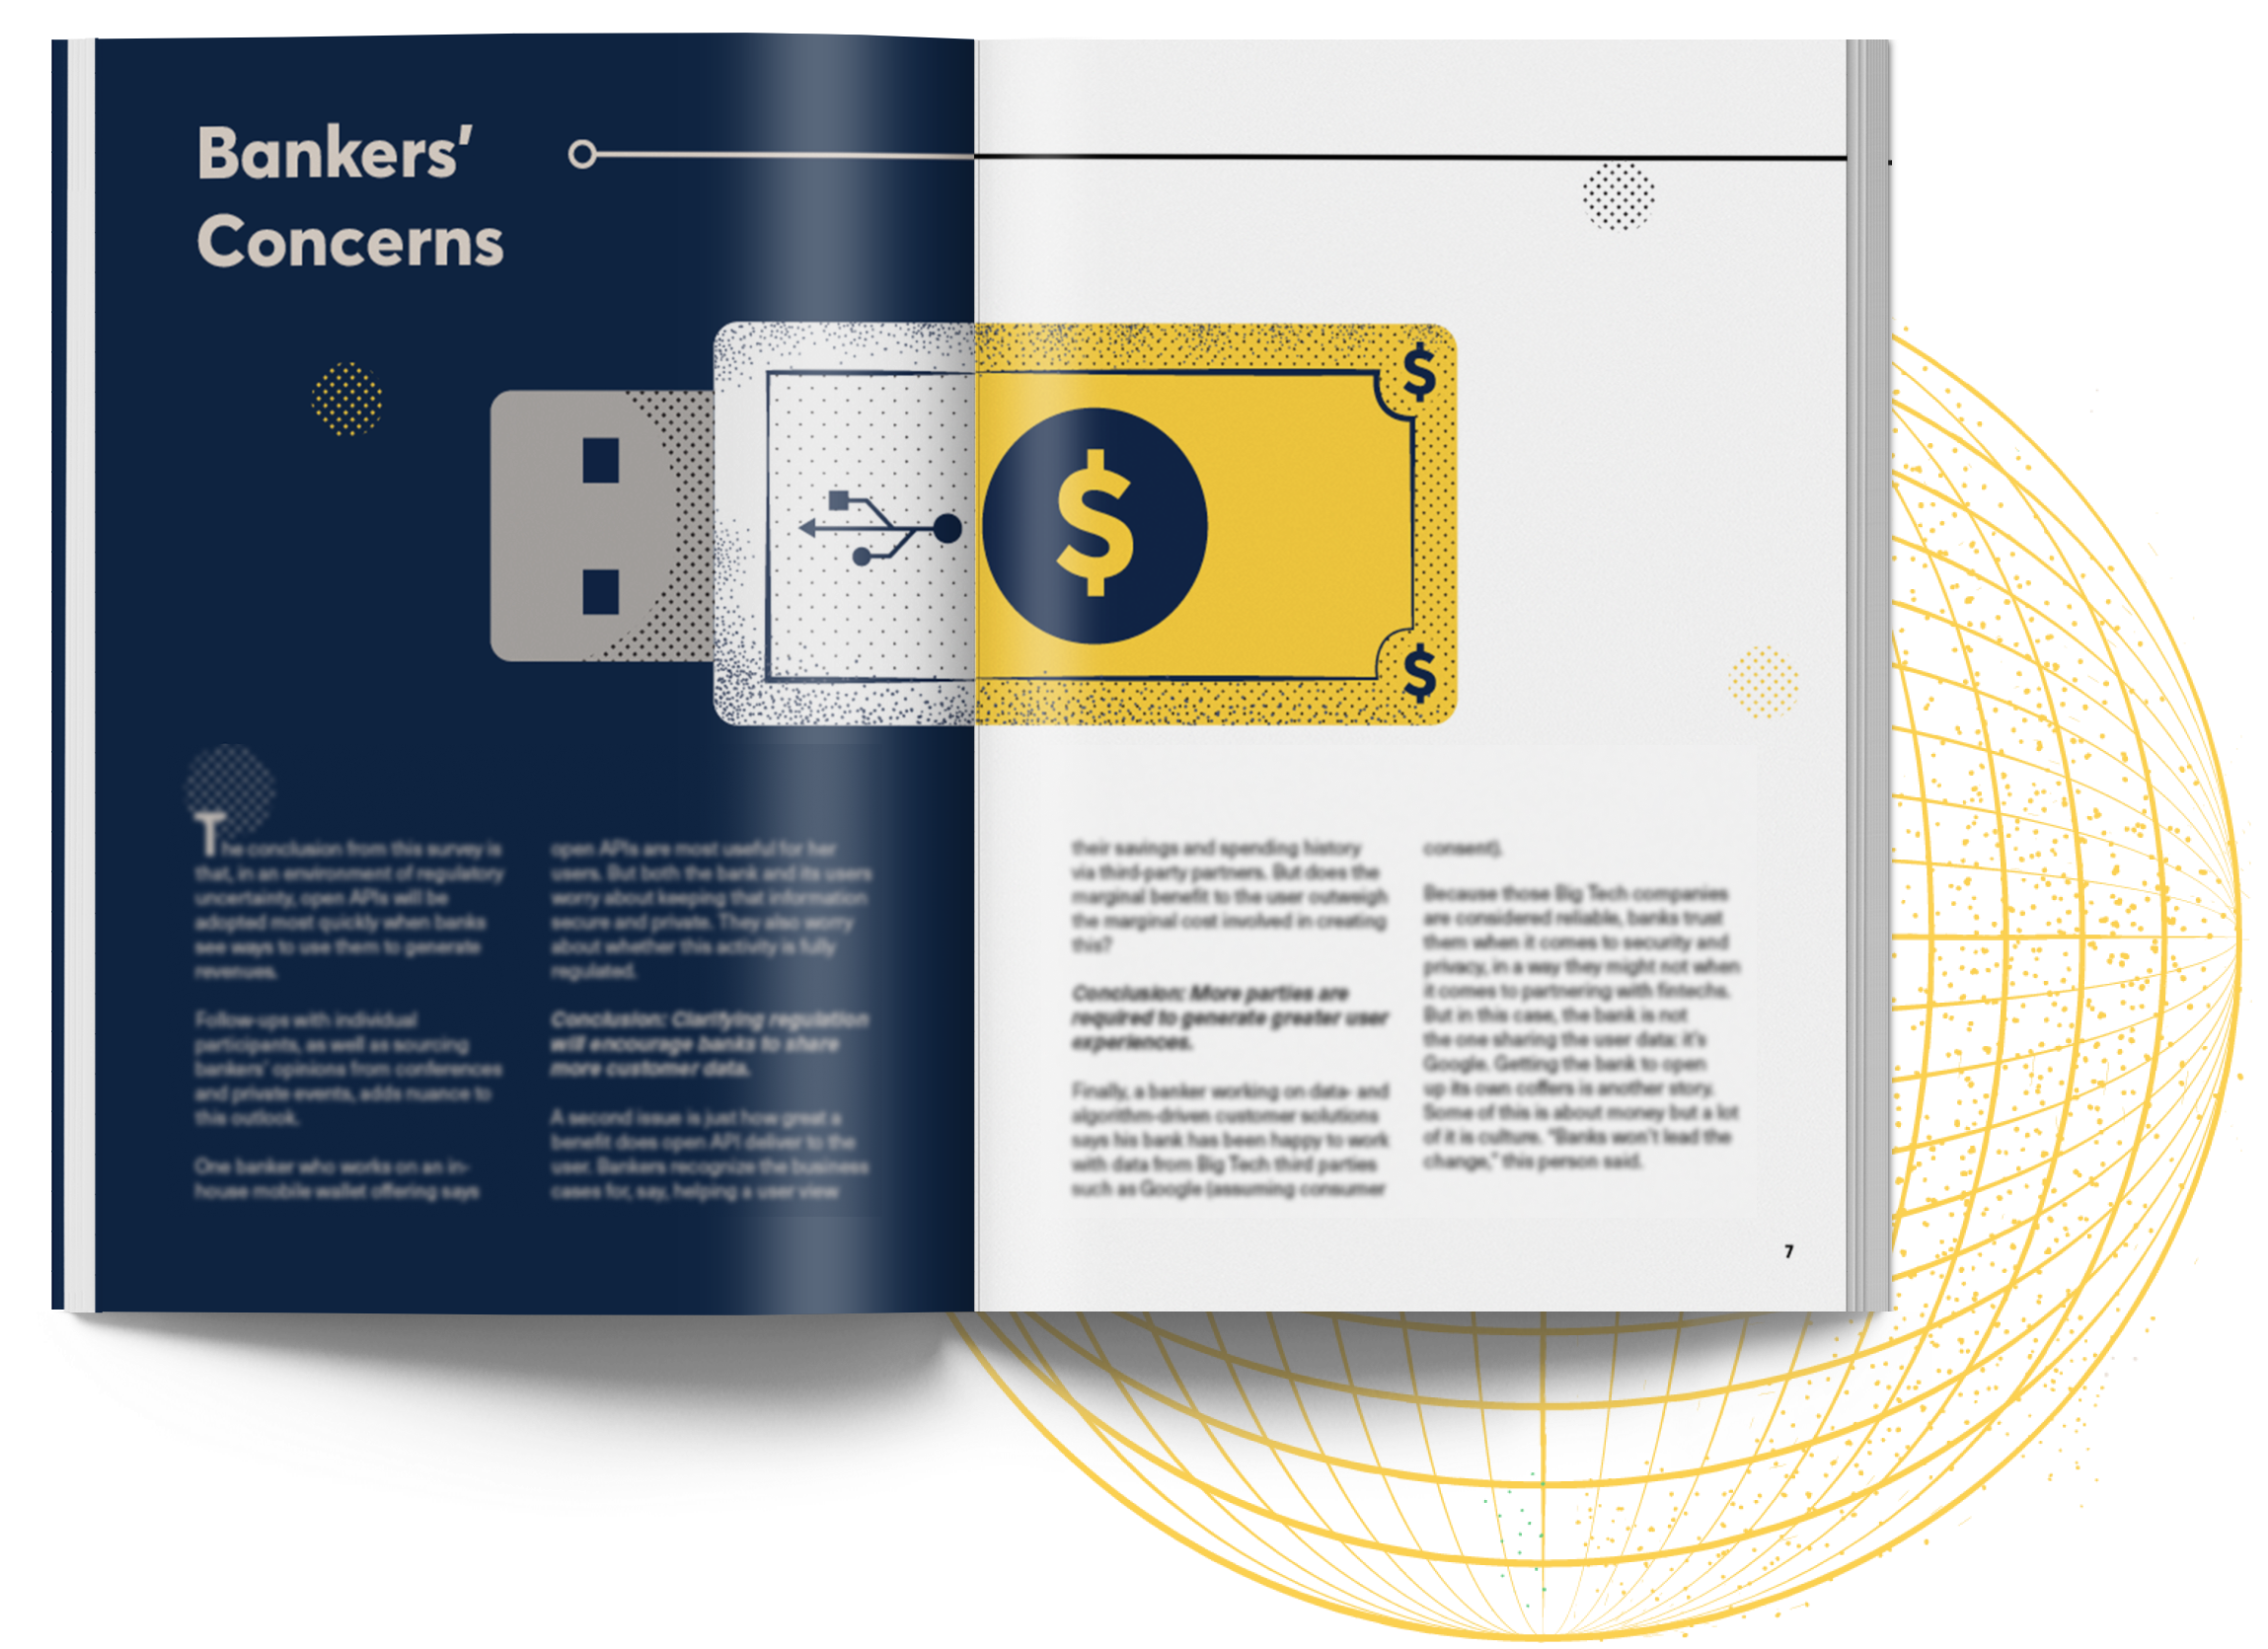 Download the open Banking 2020 research report by gini